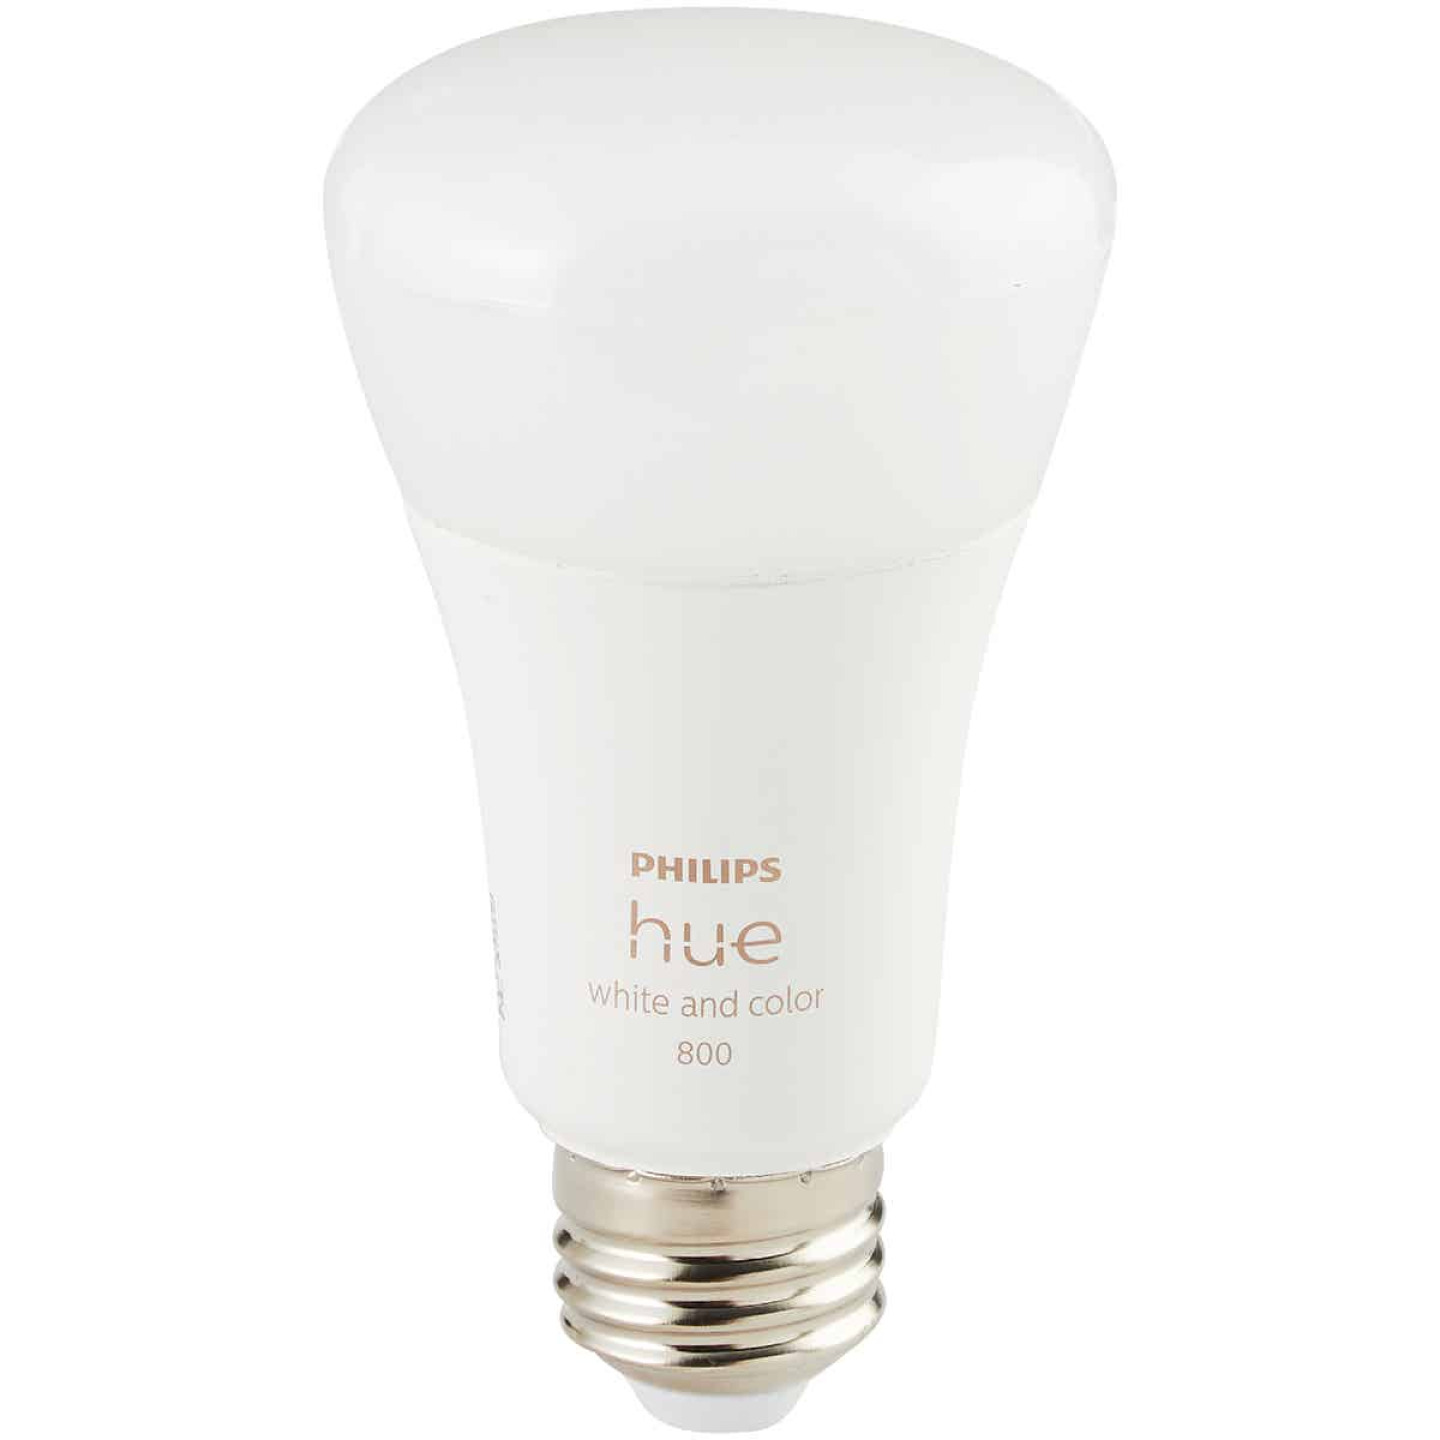 Philips Hue White & Color Ambiance 60W Equivalent Medium A19 Dimmable LED Light Bulb Bluetooth Starter Kit Image 5